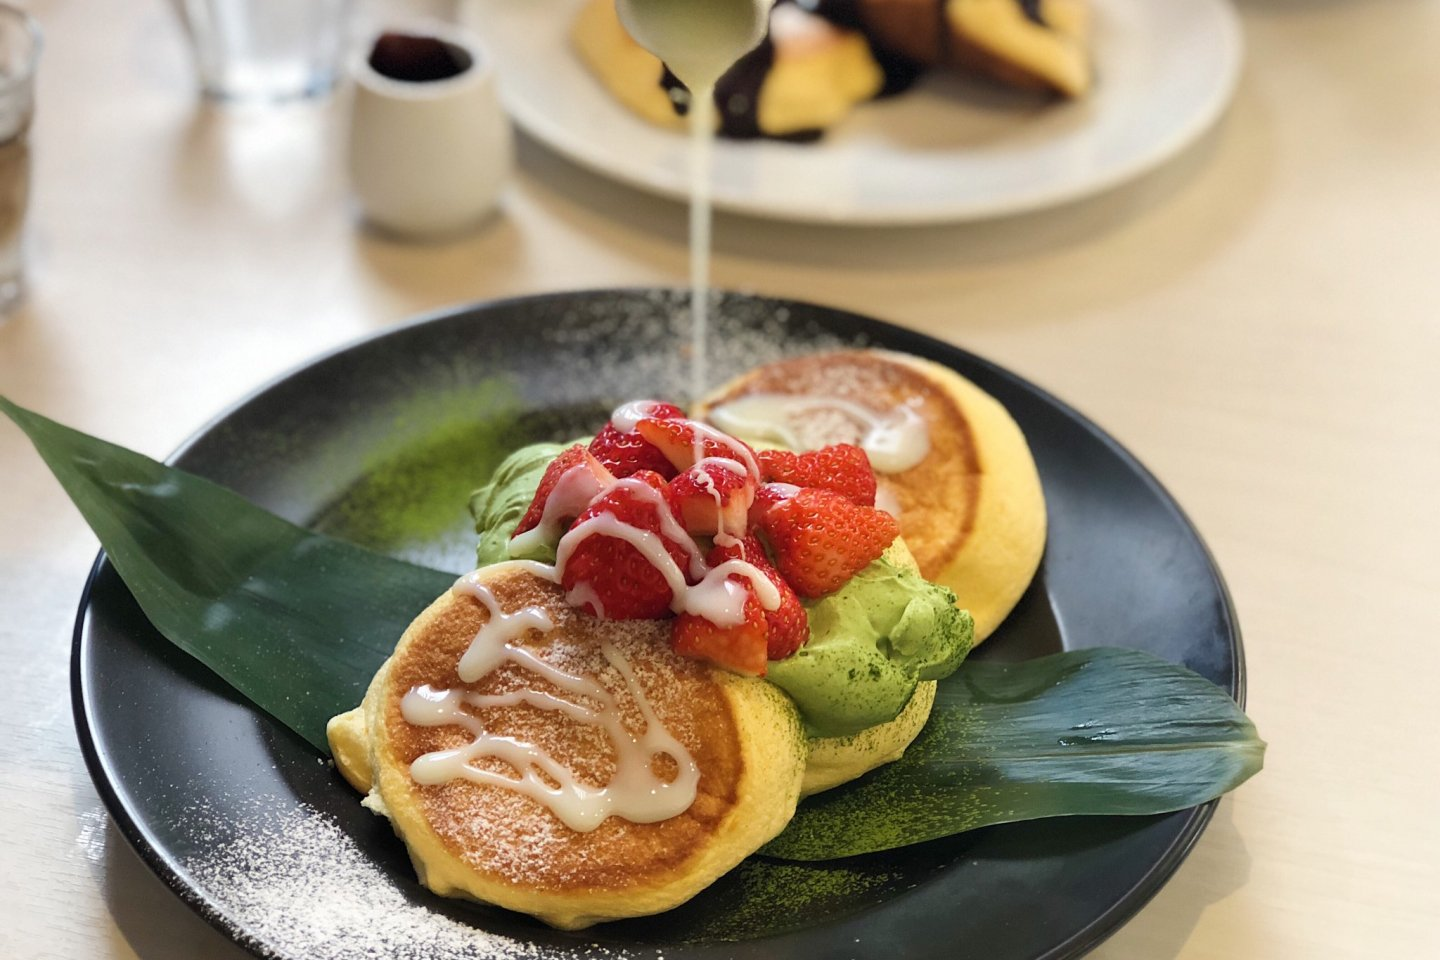 Uji Matcha Whipped Cream Pancakes w/ Condensed Milk and Strawberries